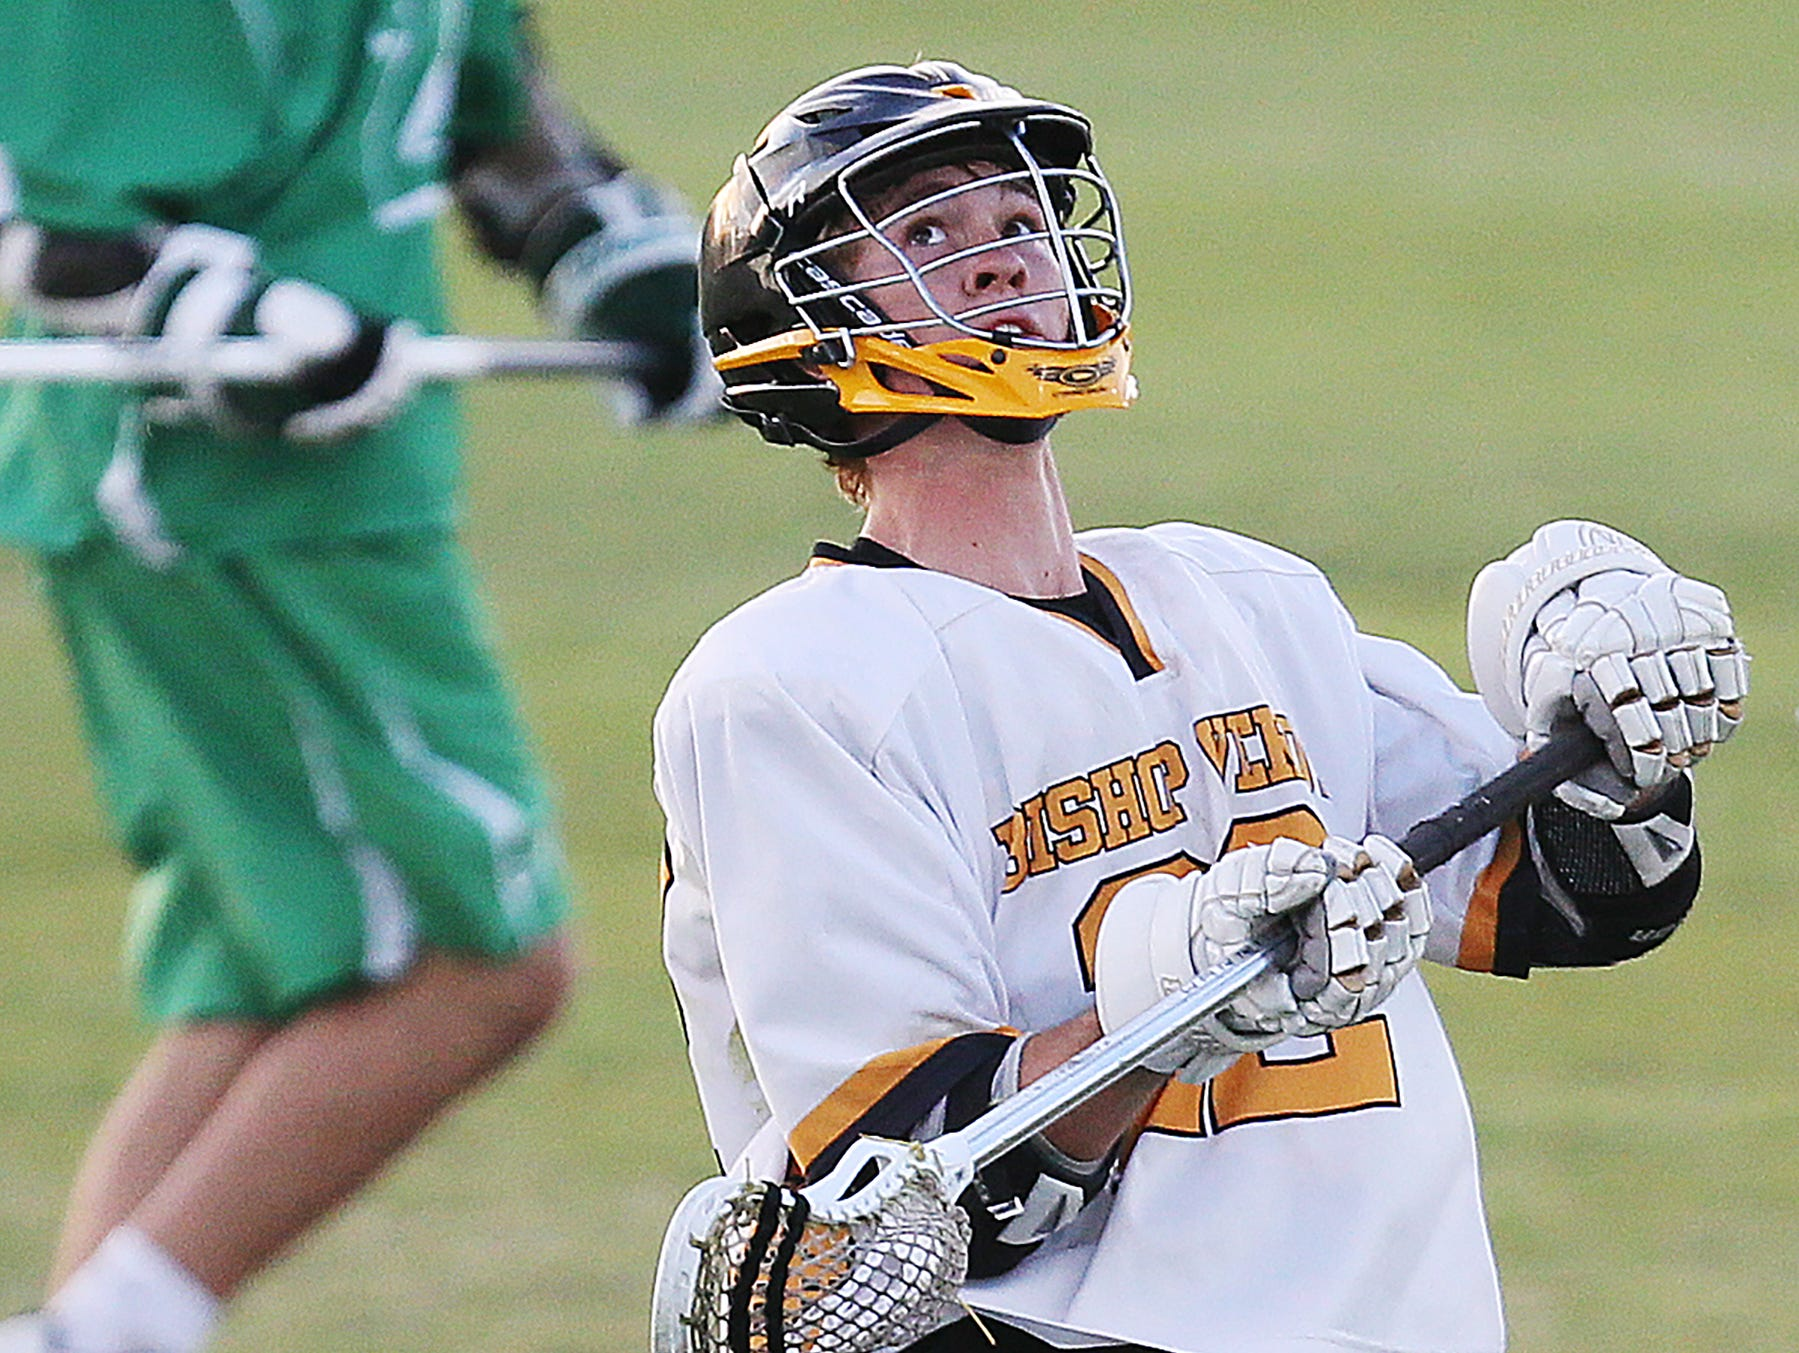 Bishop Verot High School's Luke Lanman gathers a pass against Fort Myers during the District 18 lacrosse final Friday at the Canterbury School in Fort Myers. Bishop Verot beat Fort Myers 13-6.